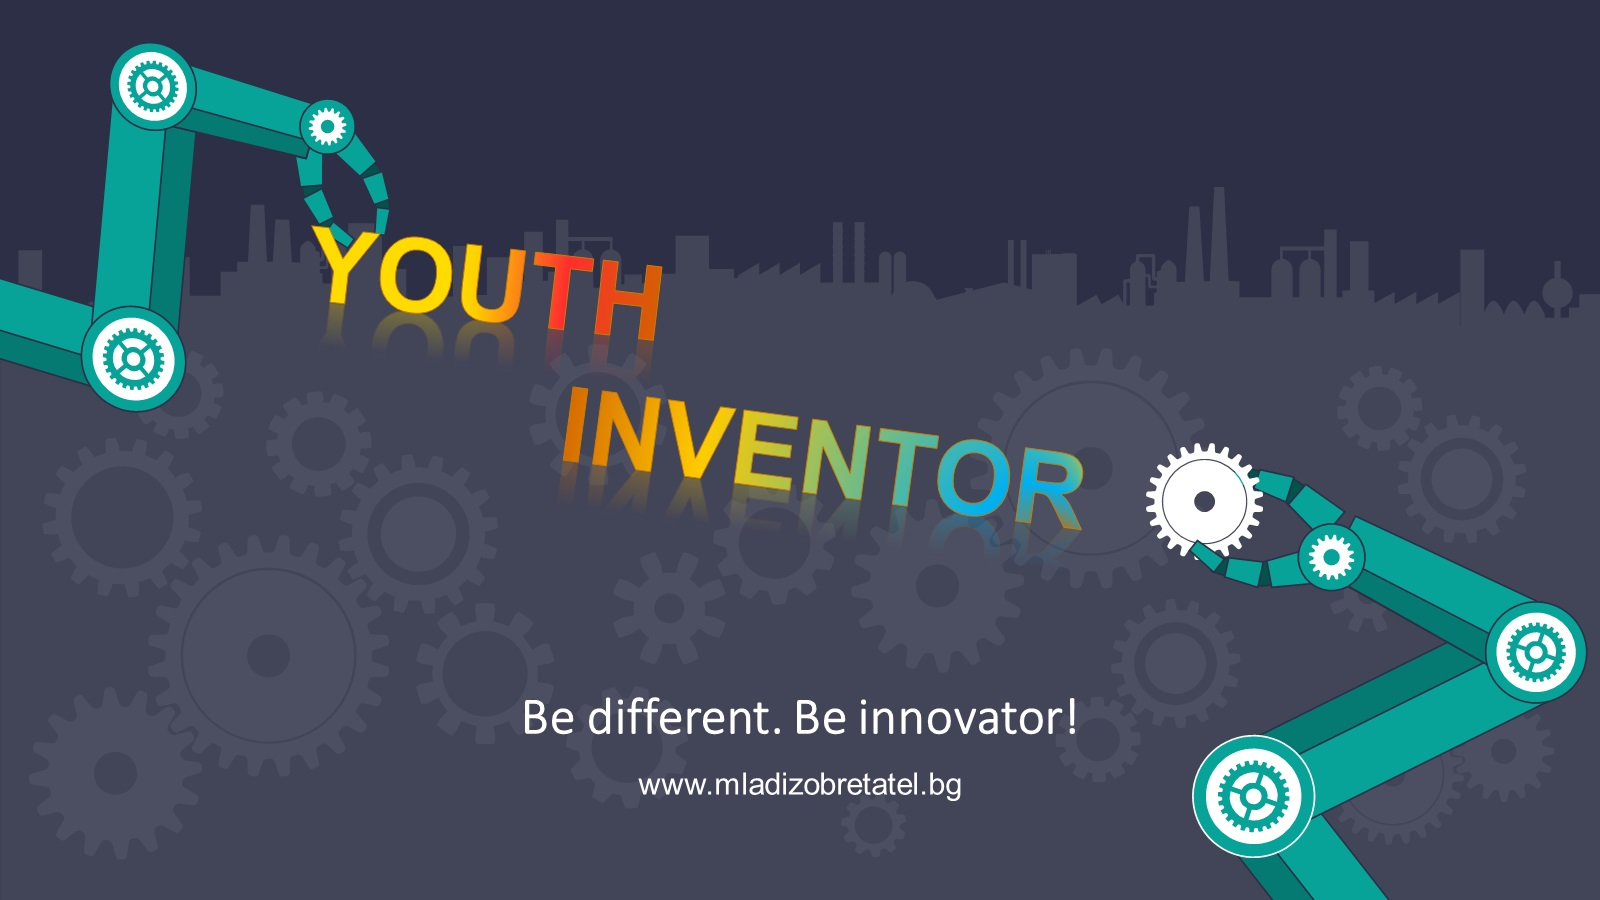 Youth_Inventor